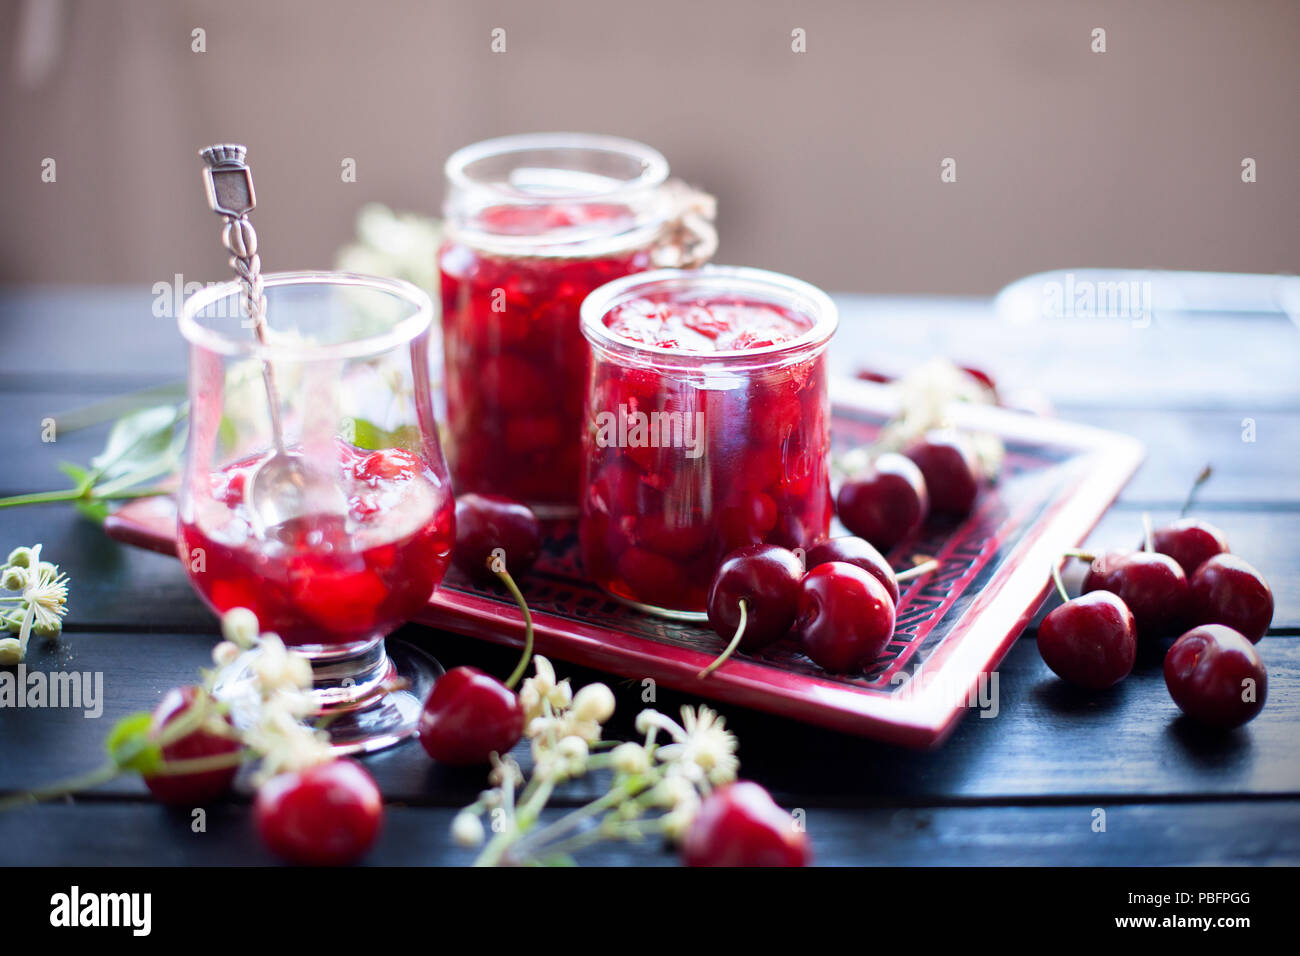 jam from cherry, in cans. winter desserts. dark photo. spring white flowers - Stock Image